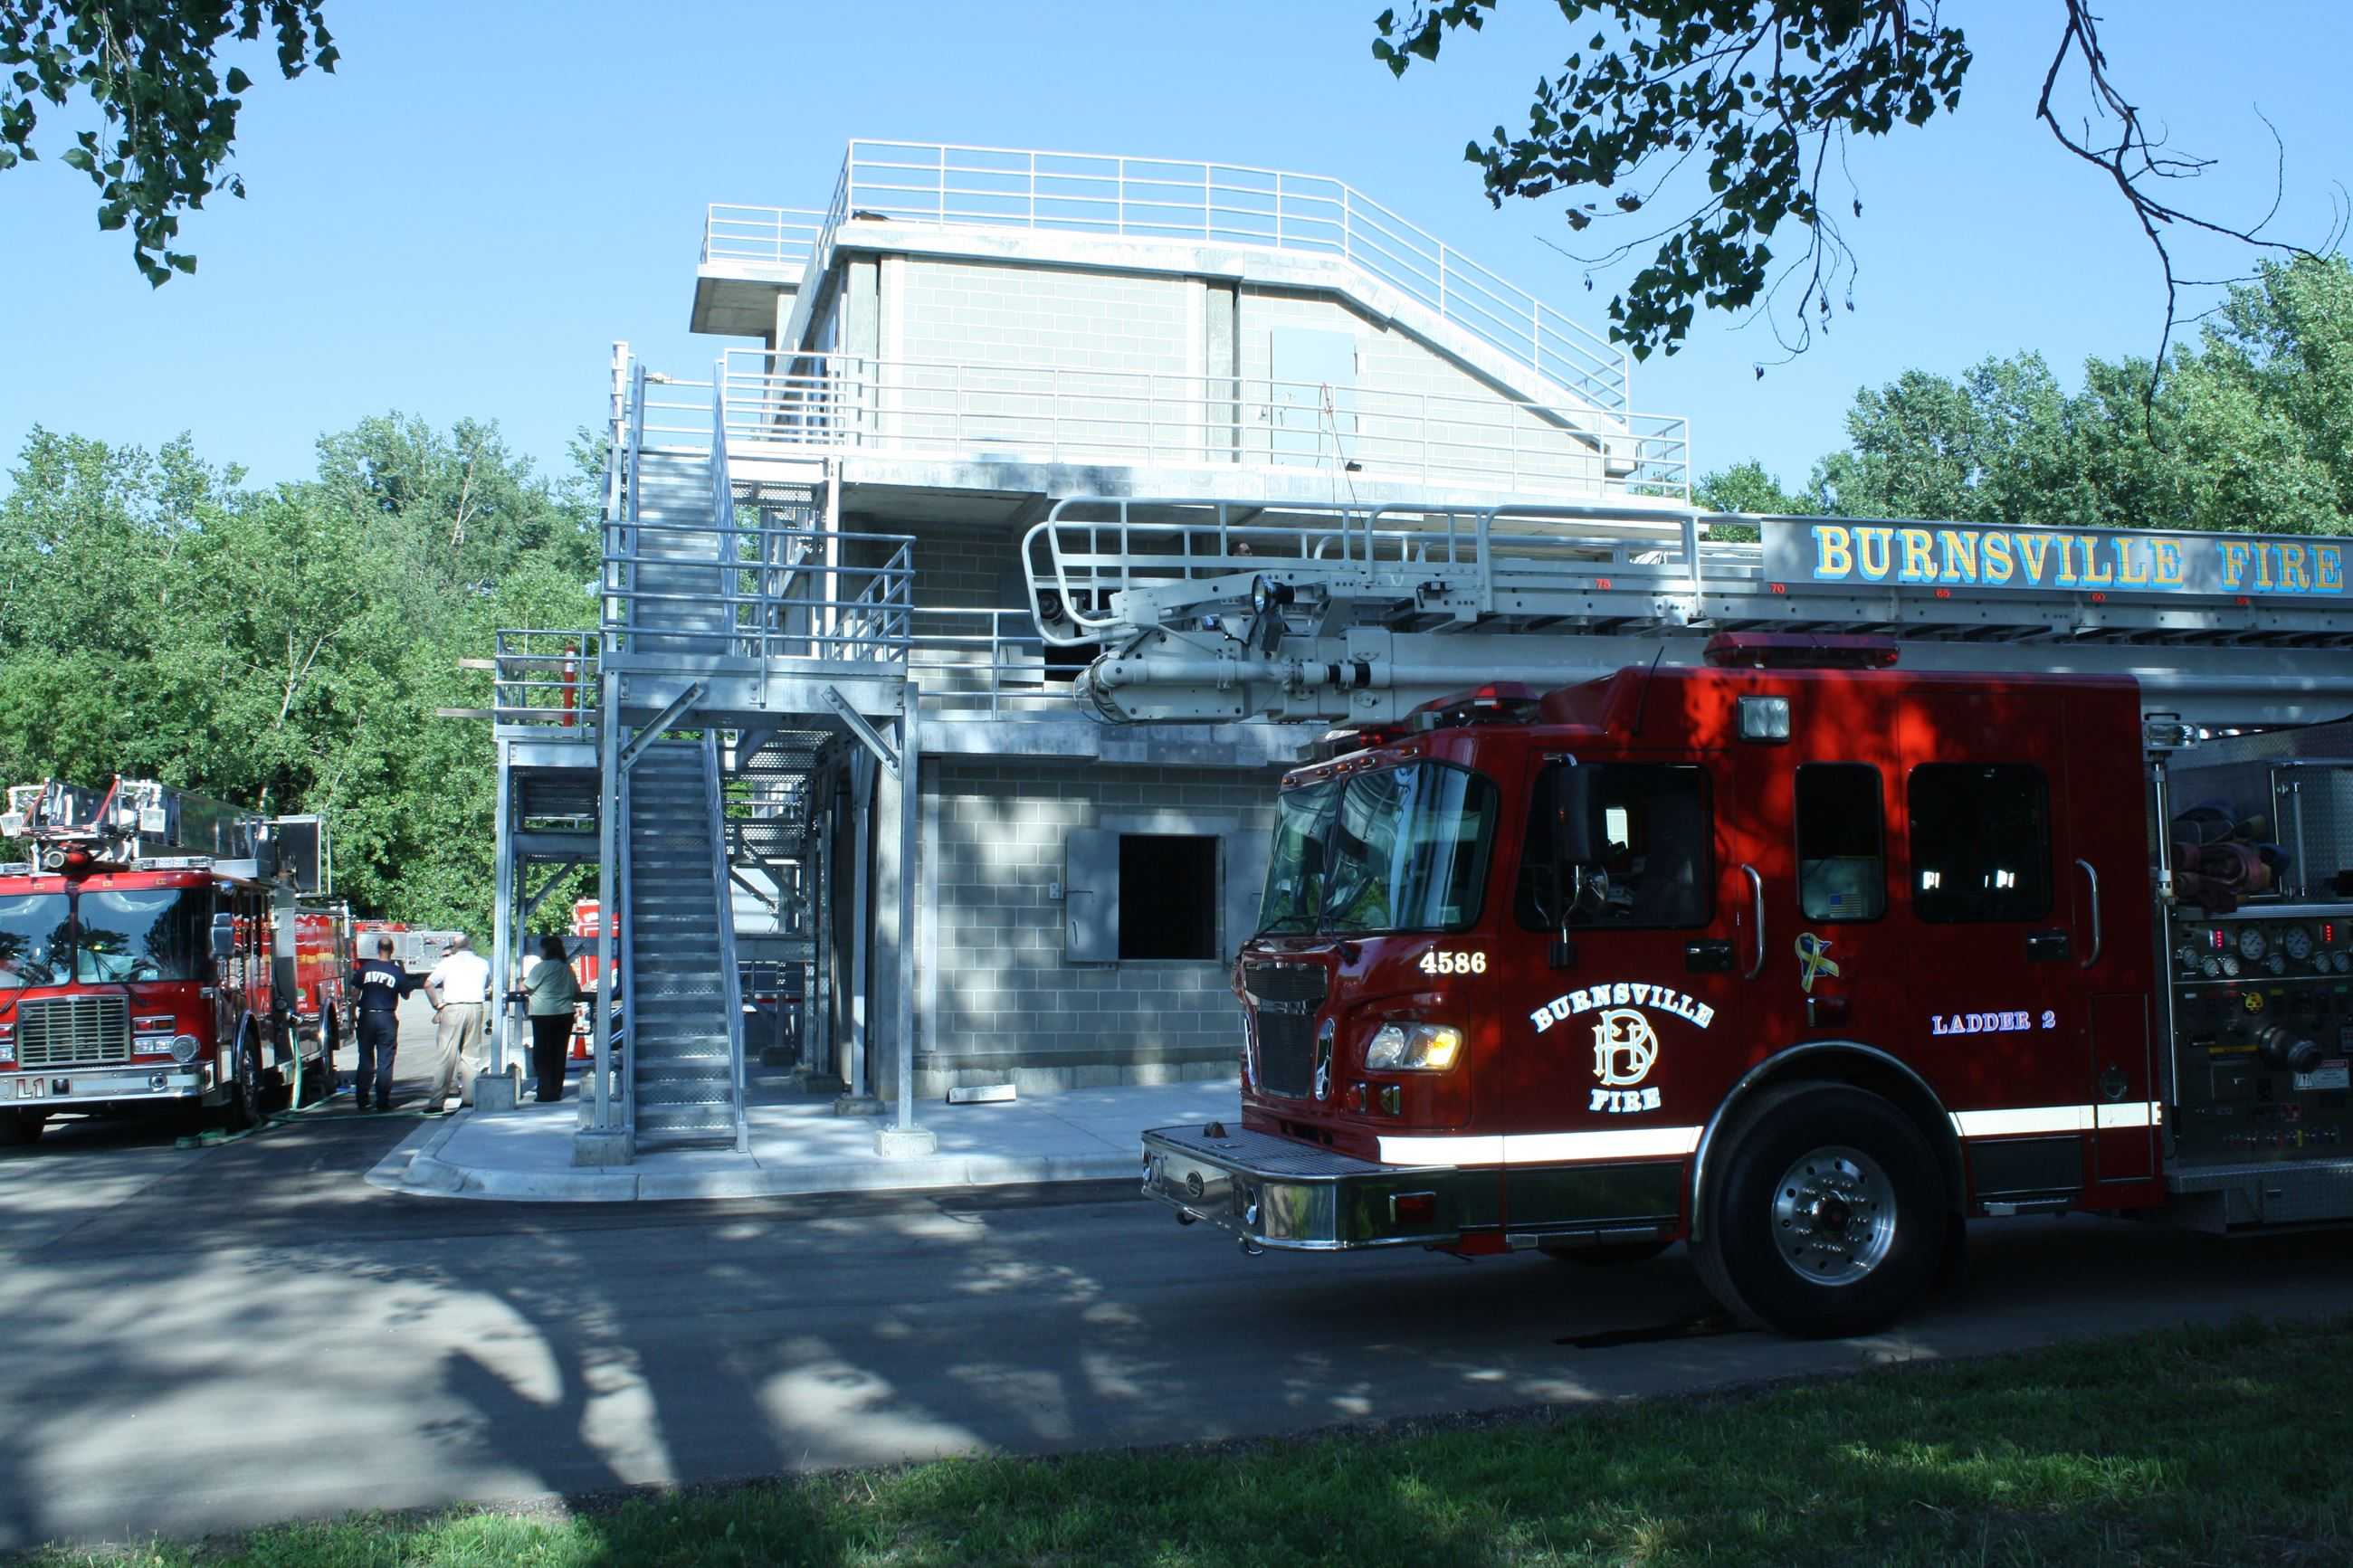 A Burnsville fire truck parked in front of the ABLE training facility